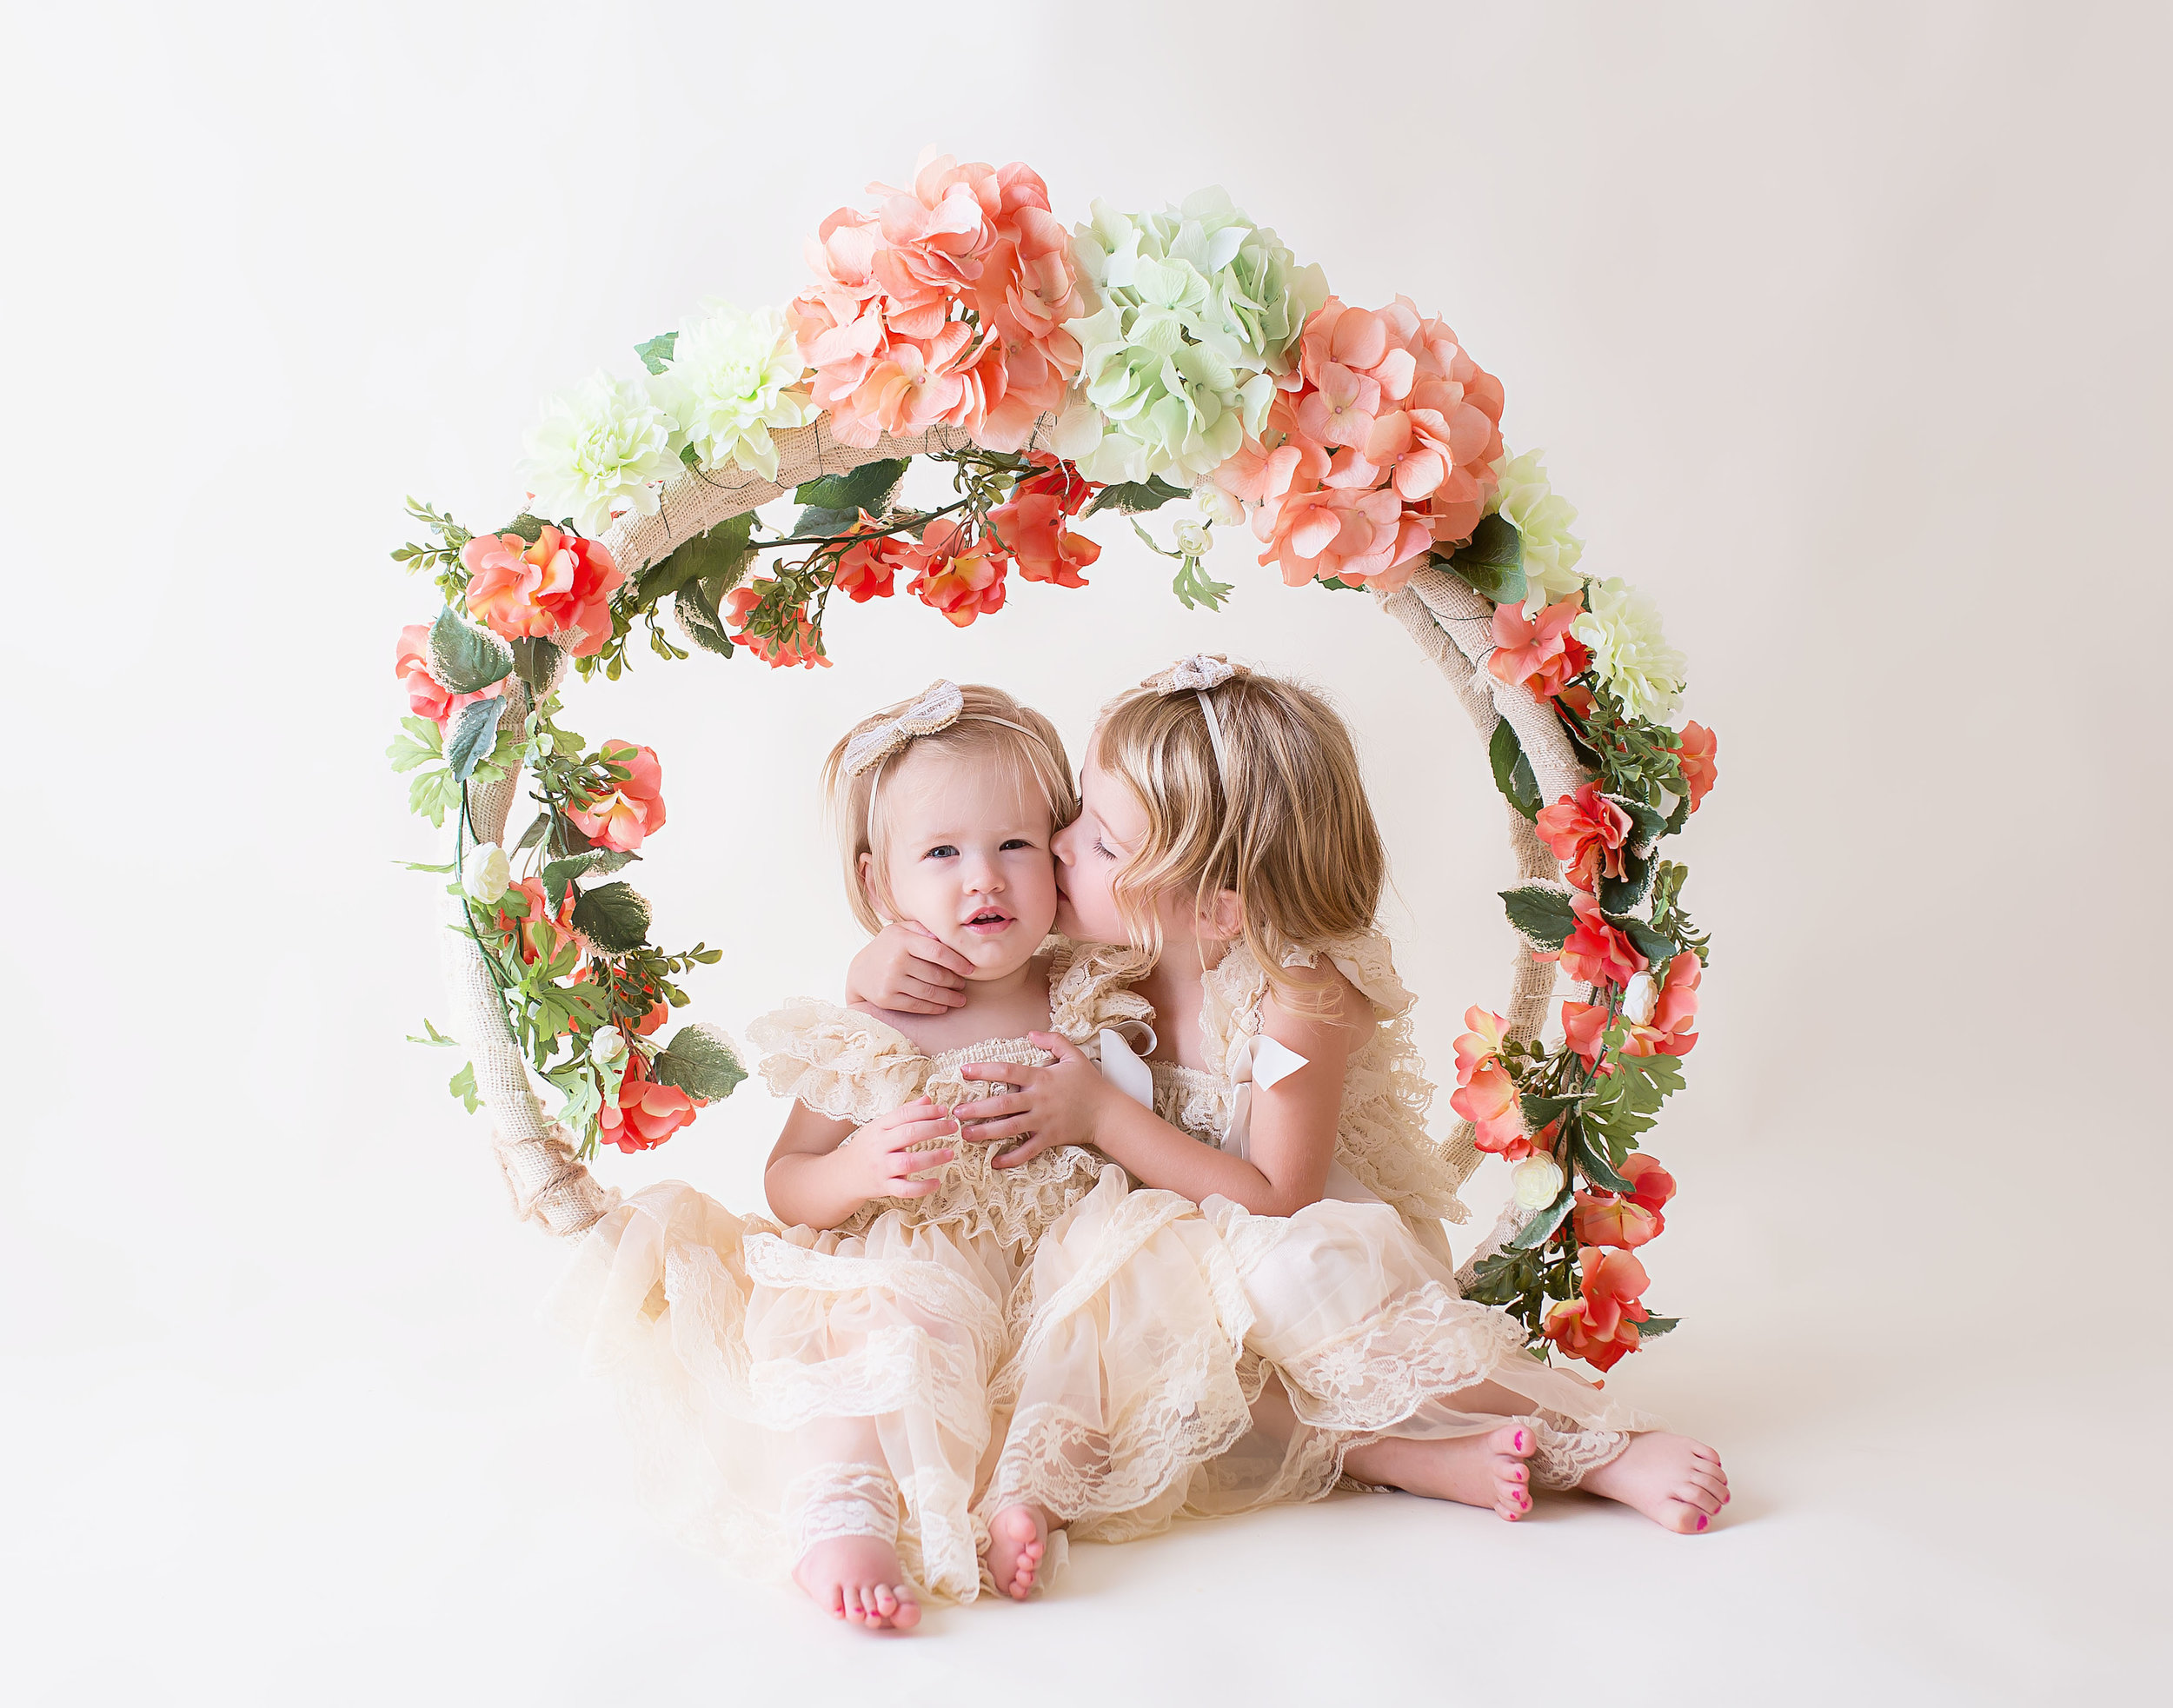 Leigh-Ann - I am thrilled with our experience! We had a quick session which is perfect for my busy toddlers. The pictures were bright and fun! The girls love Melissa and I love the pictures!